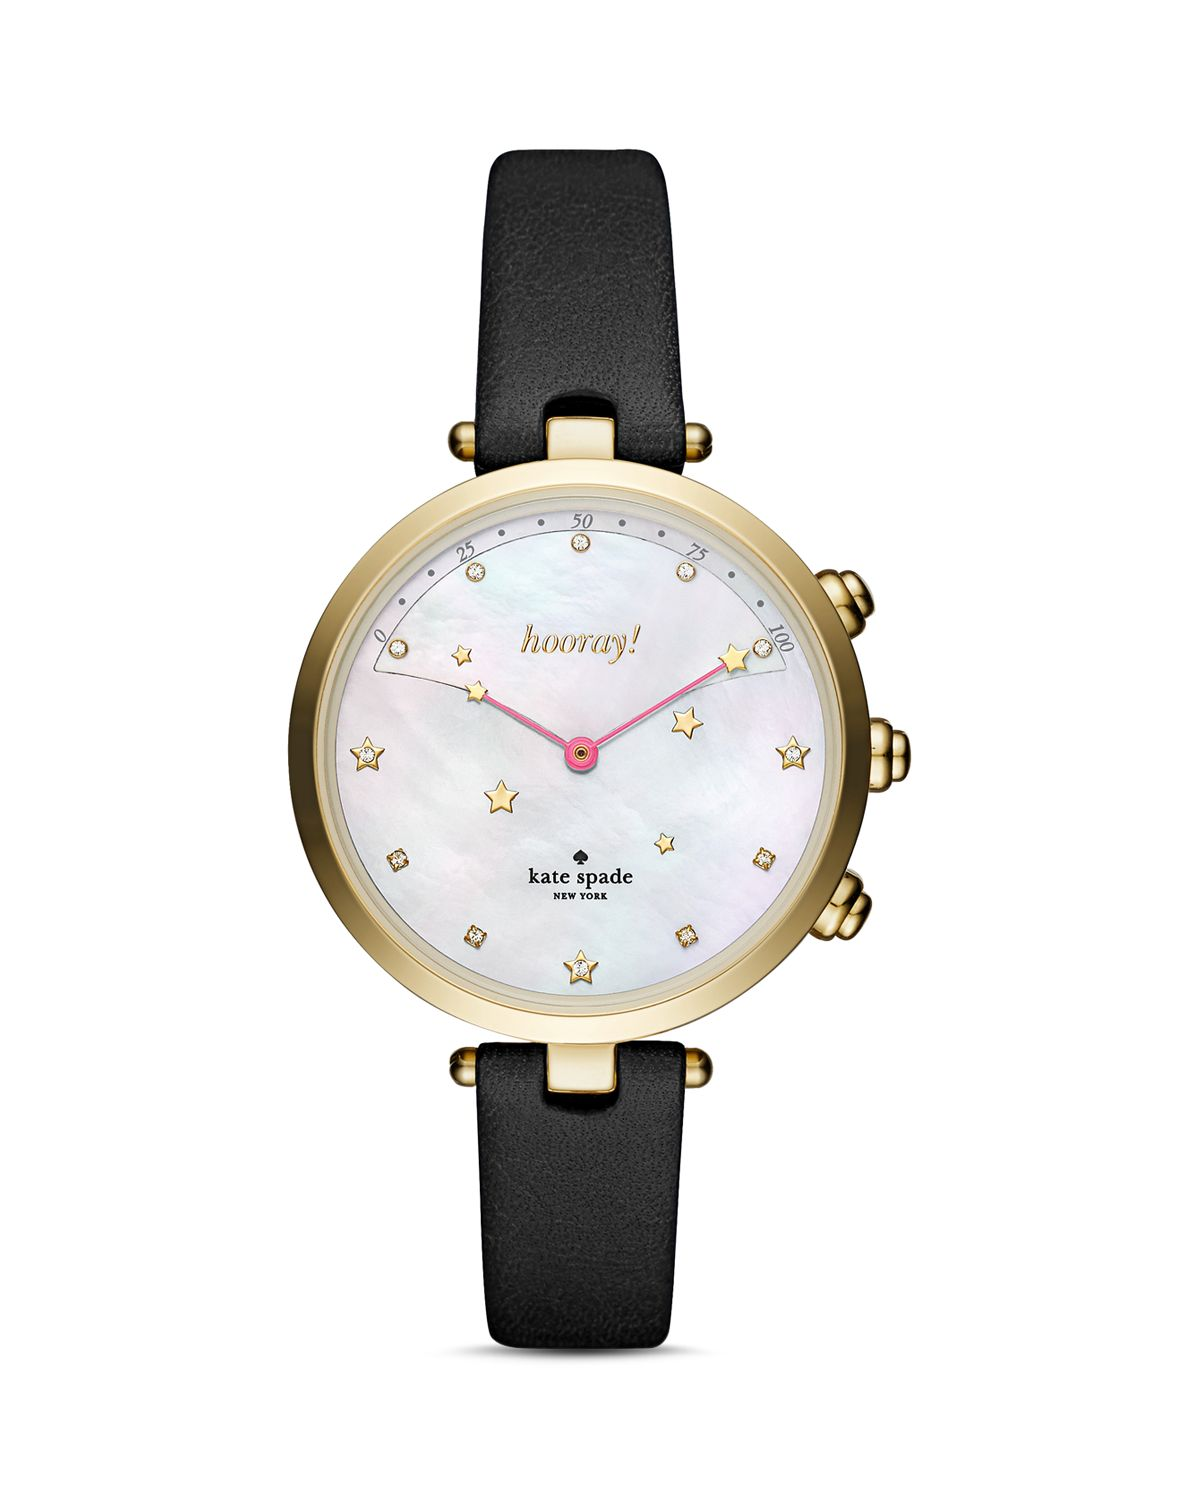 Holland Black Leather Strap Hybrid Smartwatch, 37.5mm by Kate Spade New York